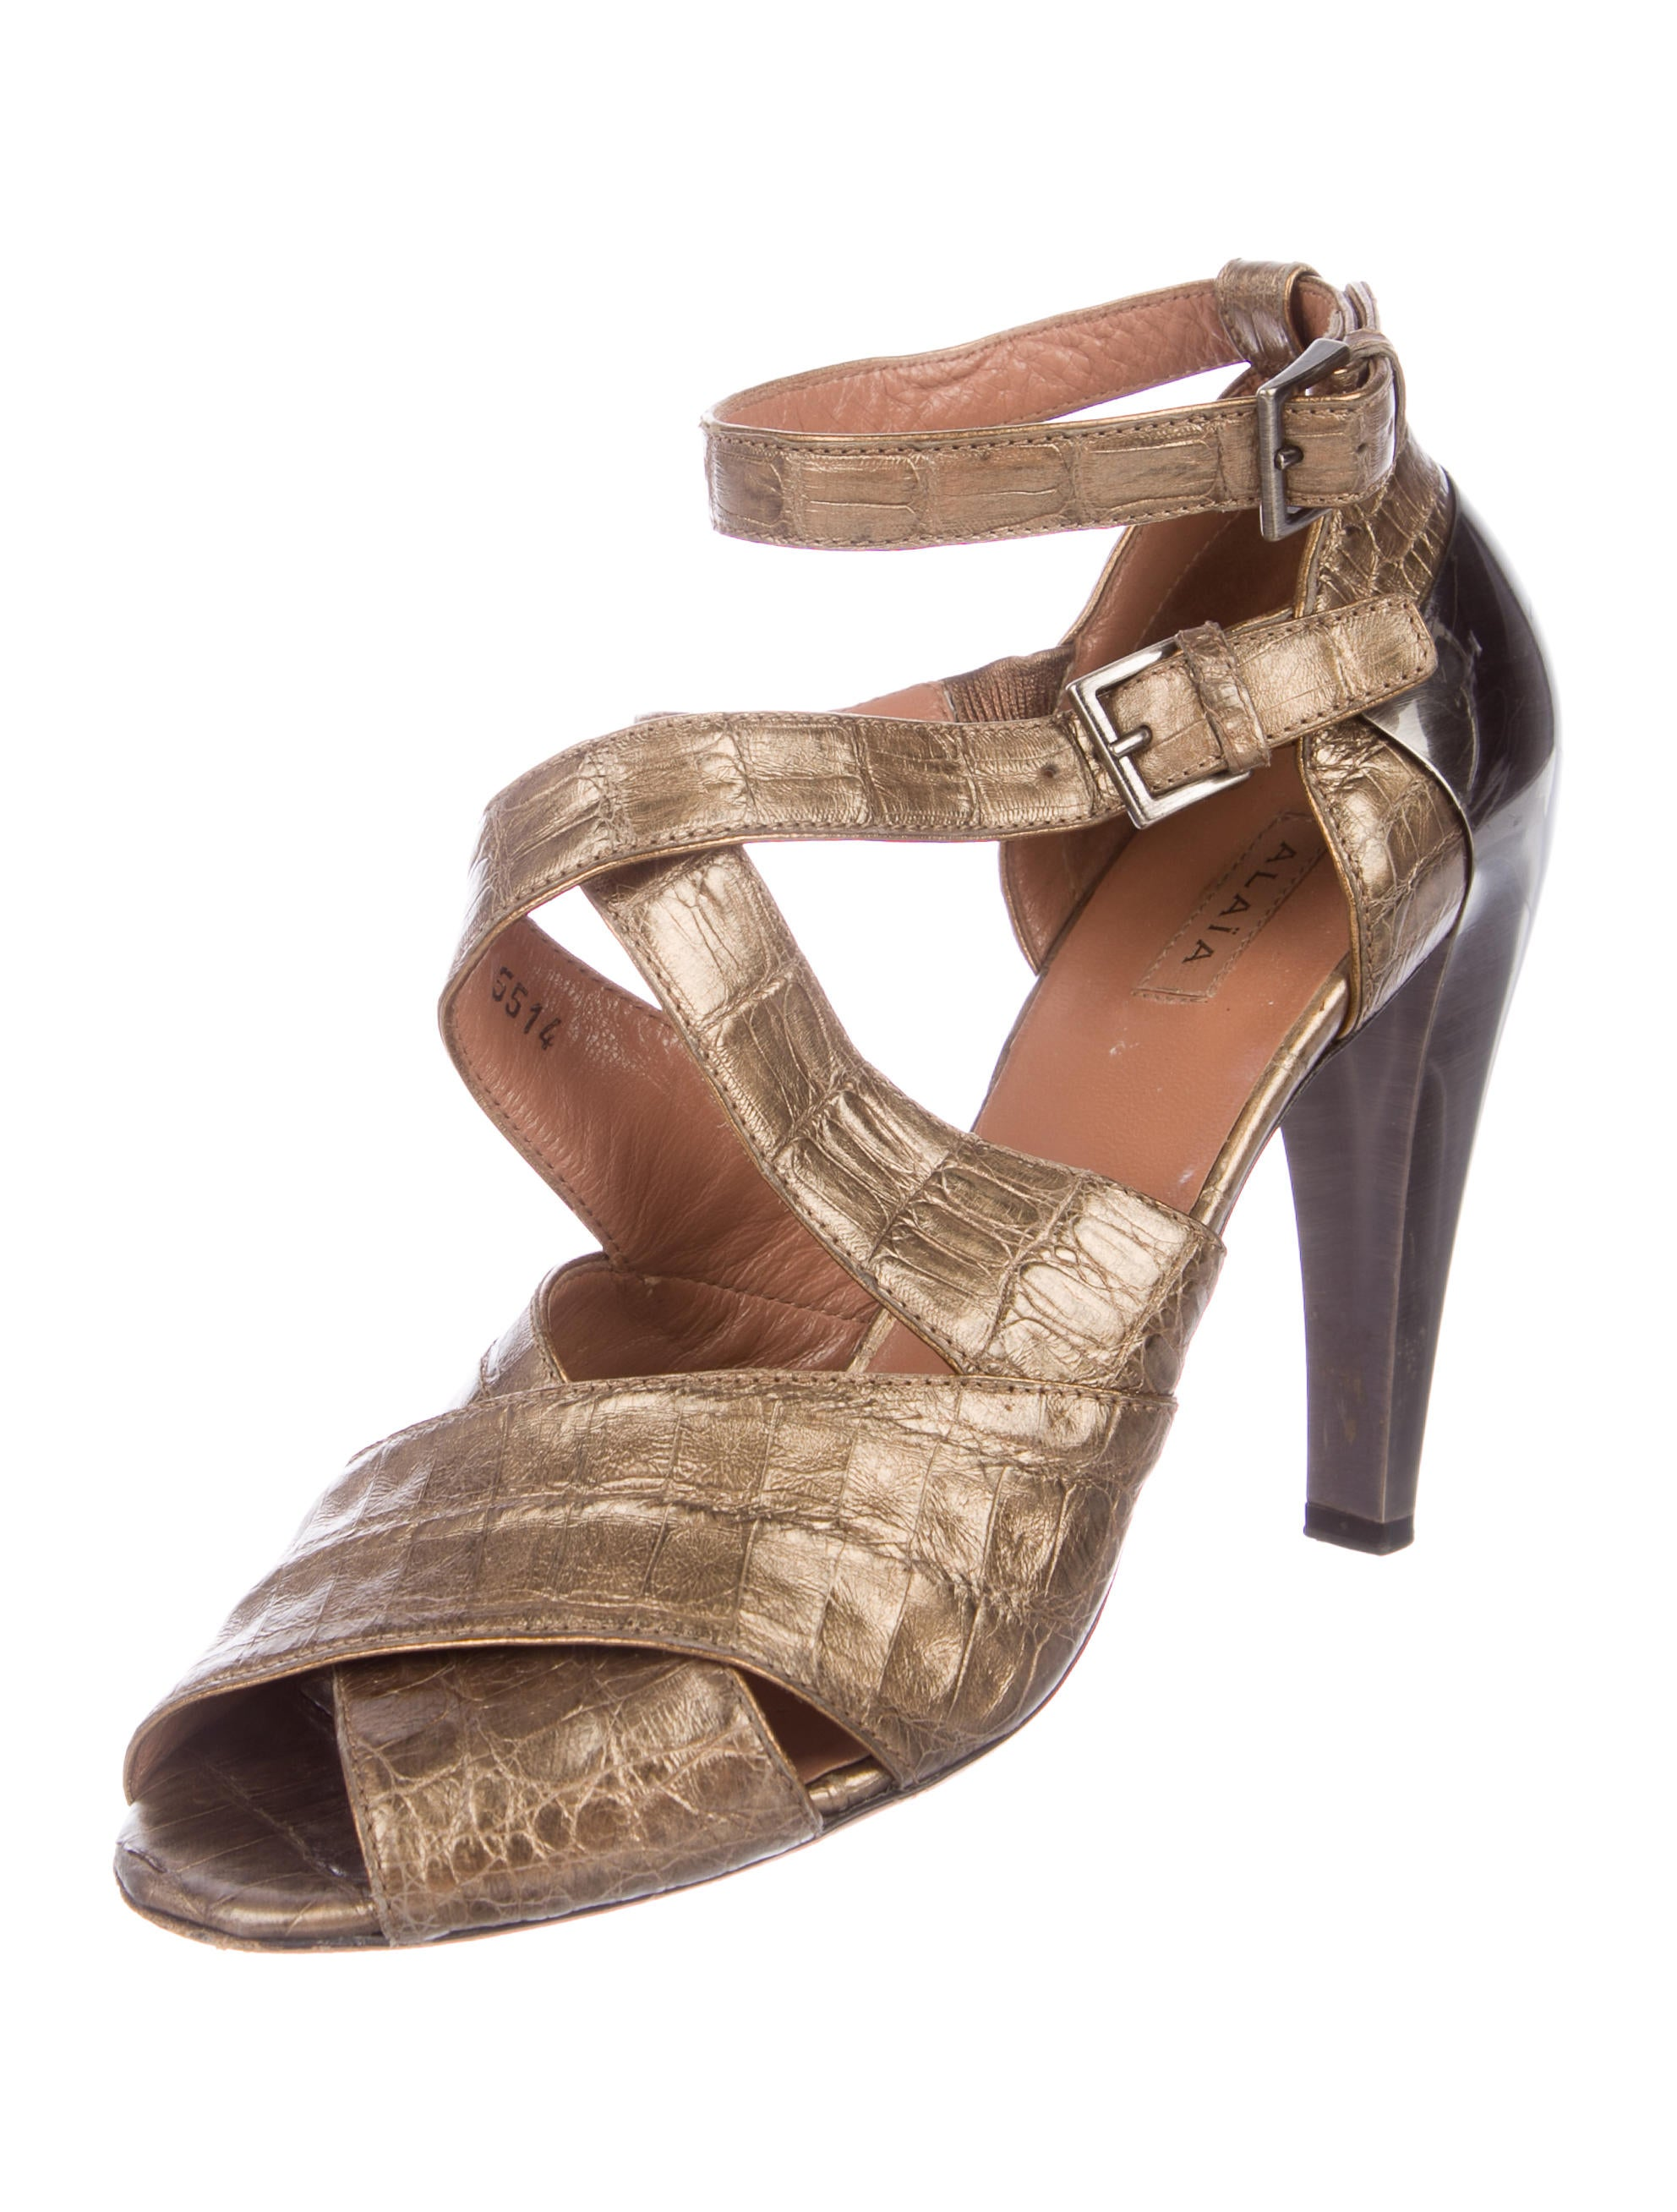 outlet get authentic Alaïa Embossed Crossover Sandals clearance original discount with mastercard cheap footlocker 1TvN7iccI